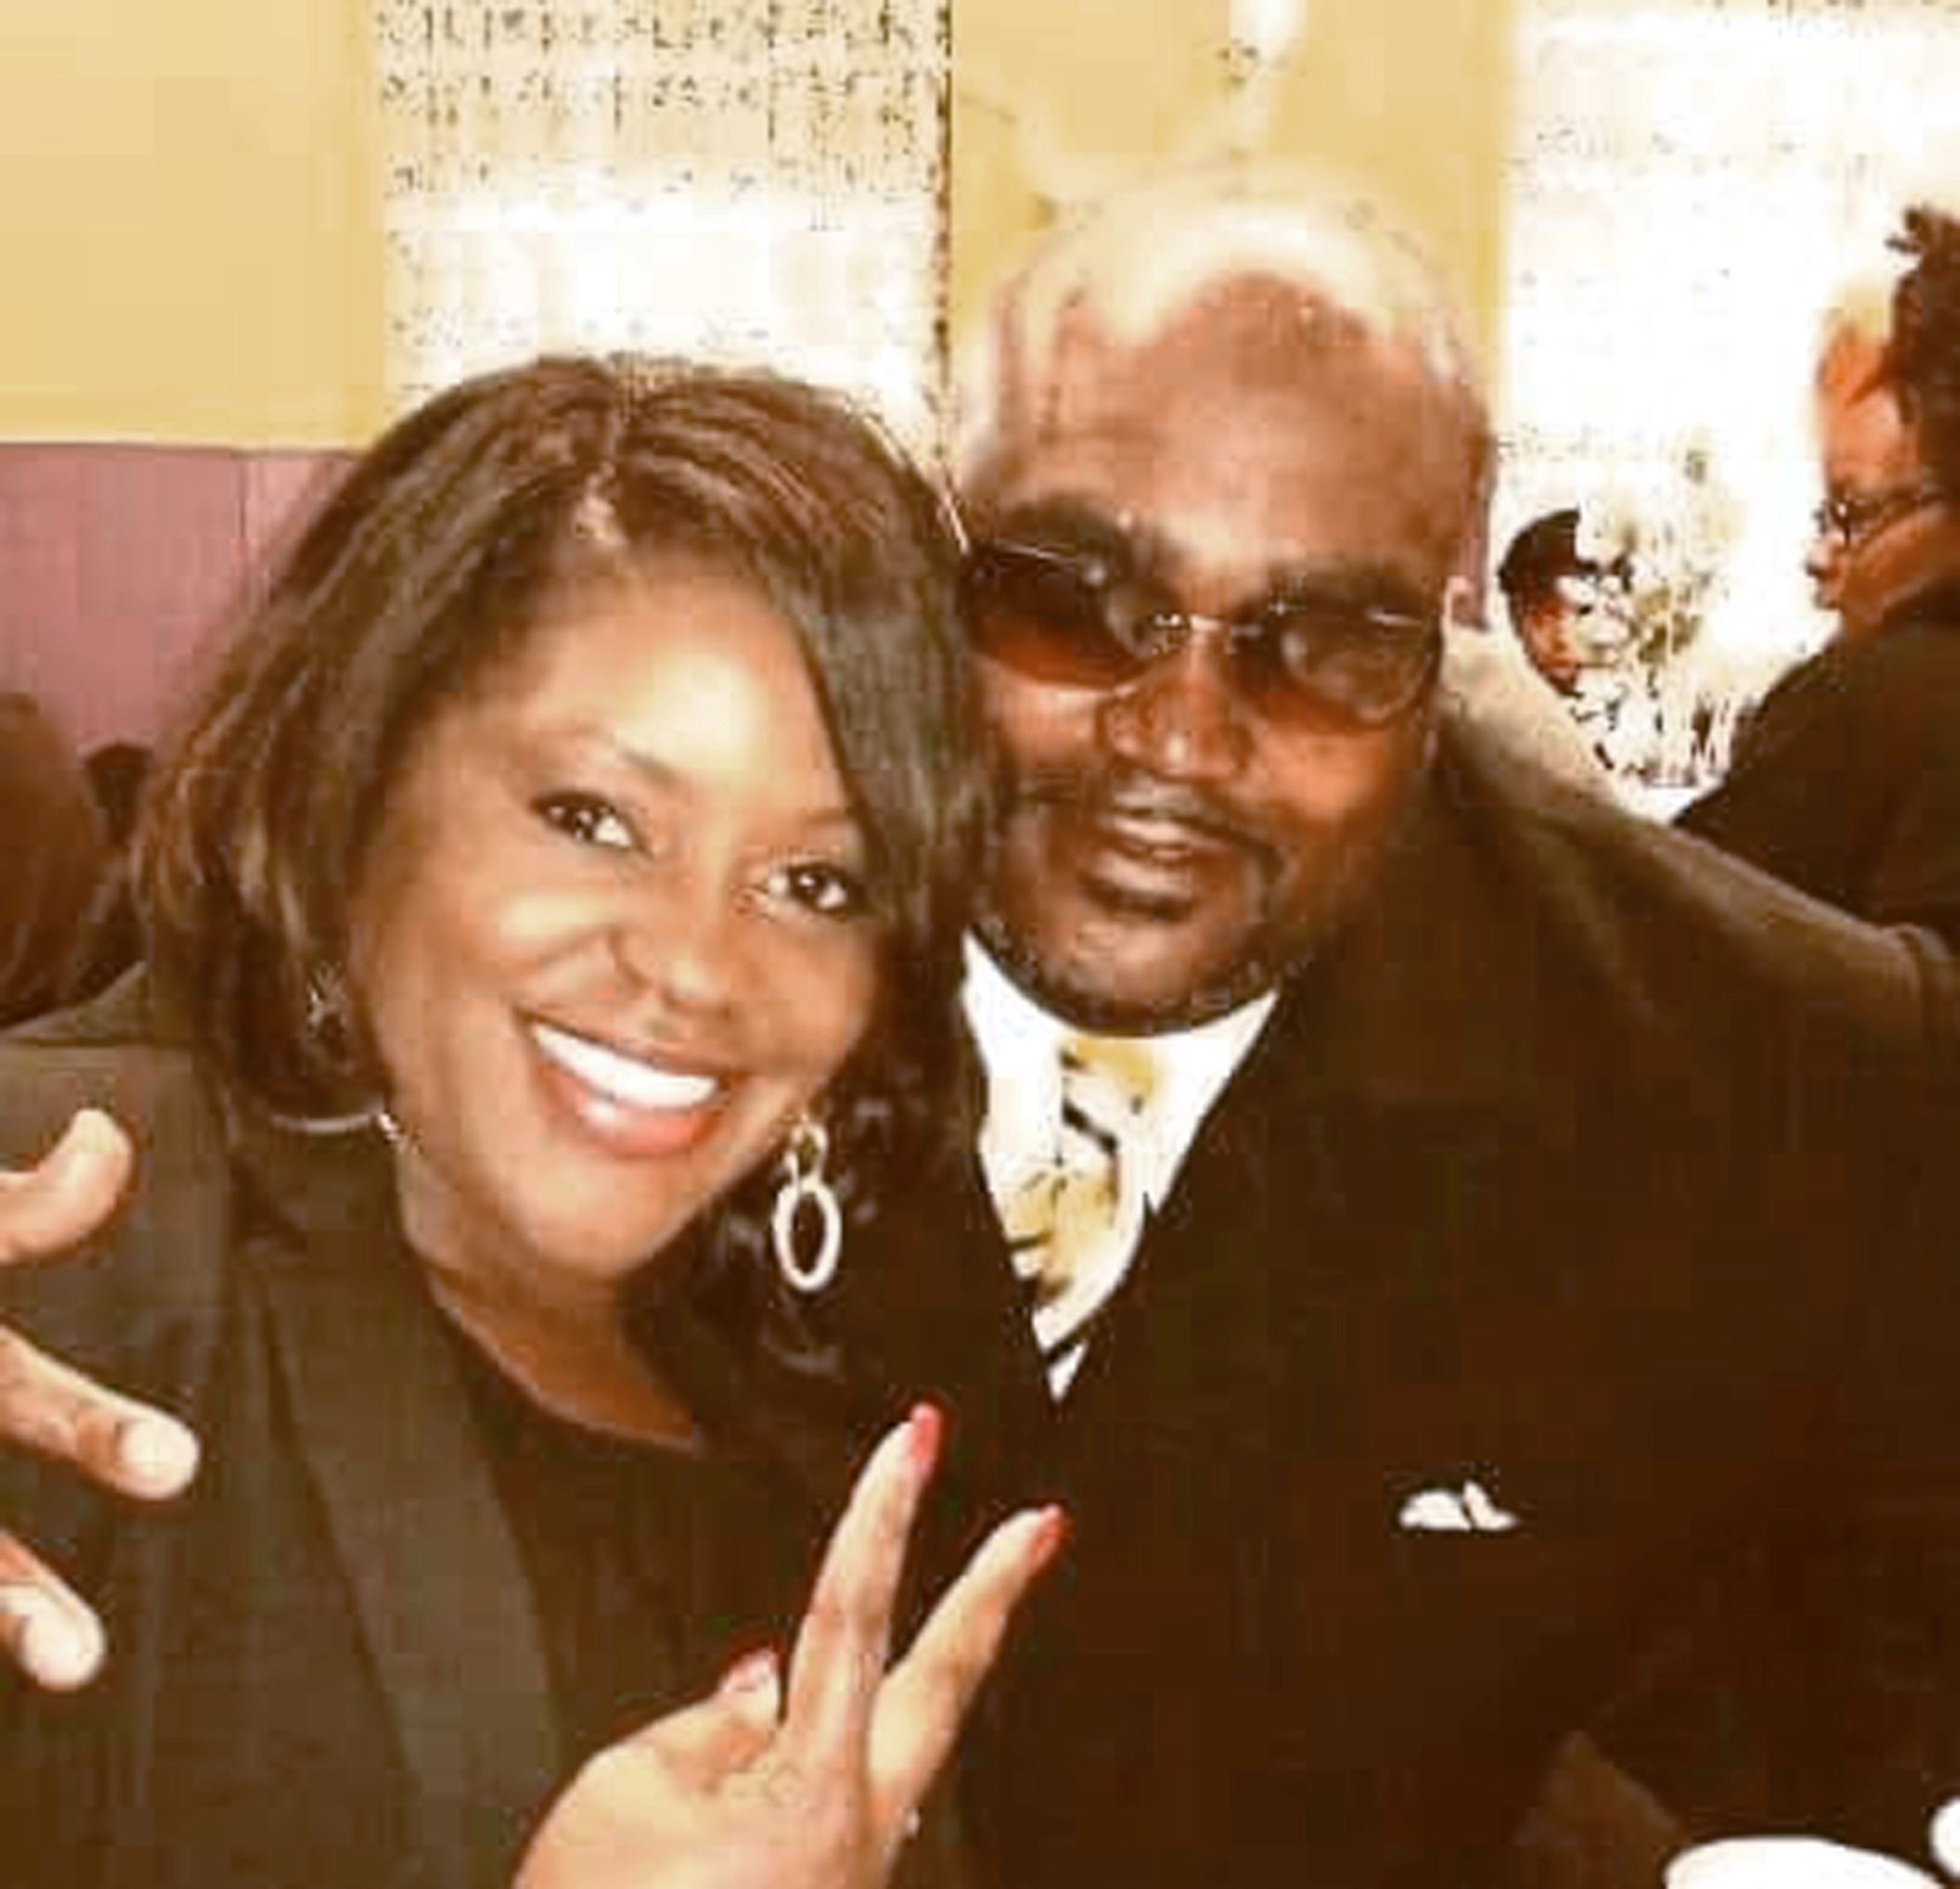 This undated photo provided by the Parks & Crump, LLC shows Terence Crutcher, right, with his twin sister Tiffany. Crutcher, an unarmed black man was killed by a white Oklahoma officer Friday, Sept. 16, 2016, who was responding to a stalled vehicle